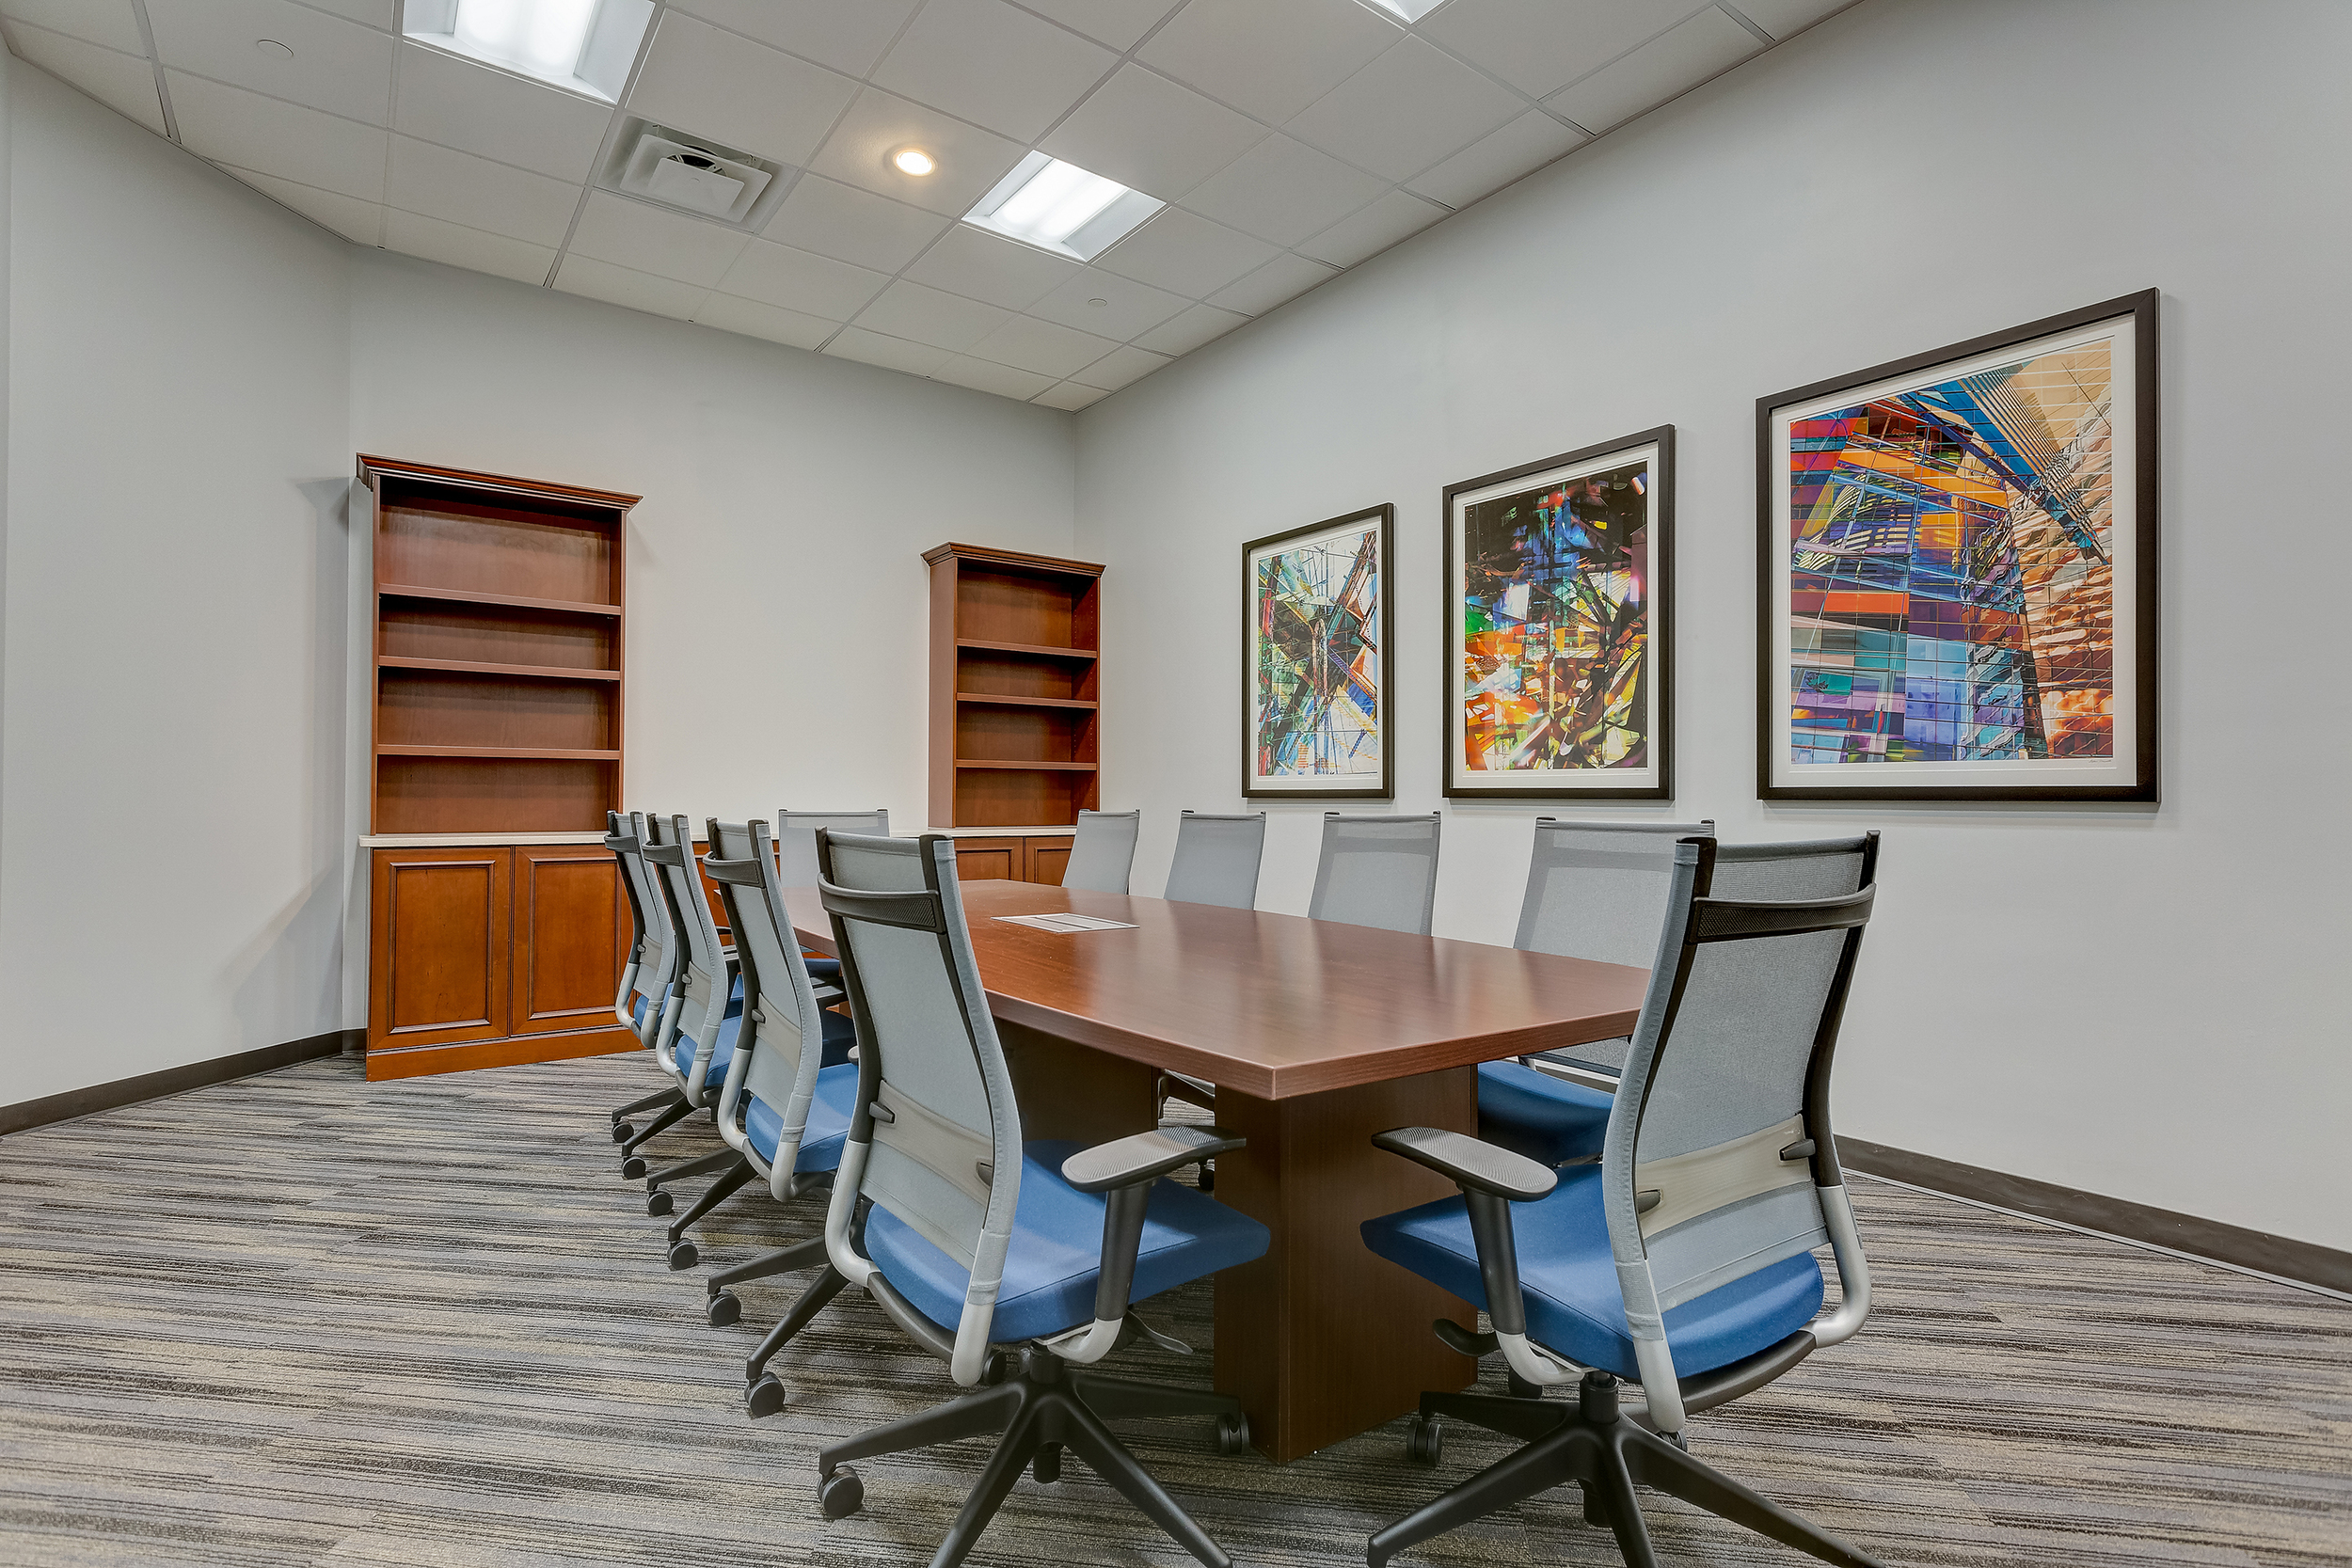 Addition of a Building Amenity Conference Room for Tenants use